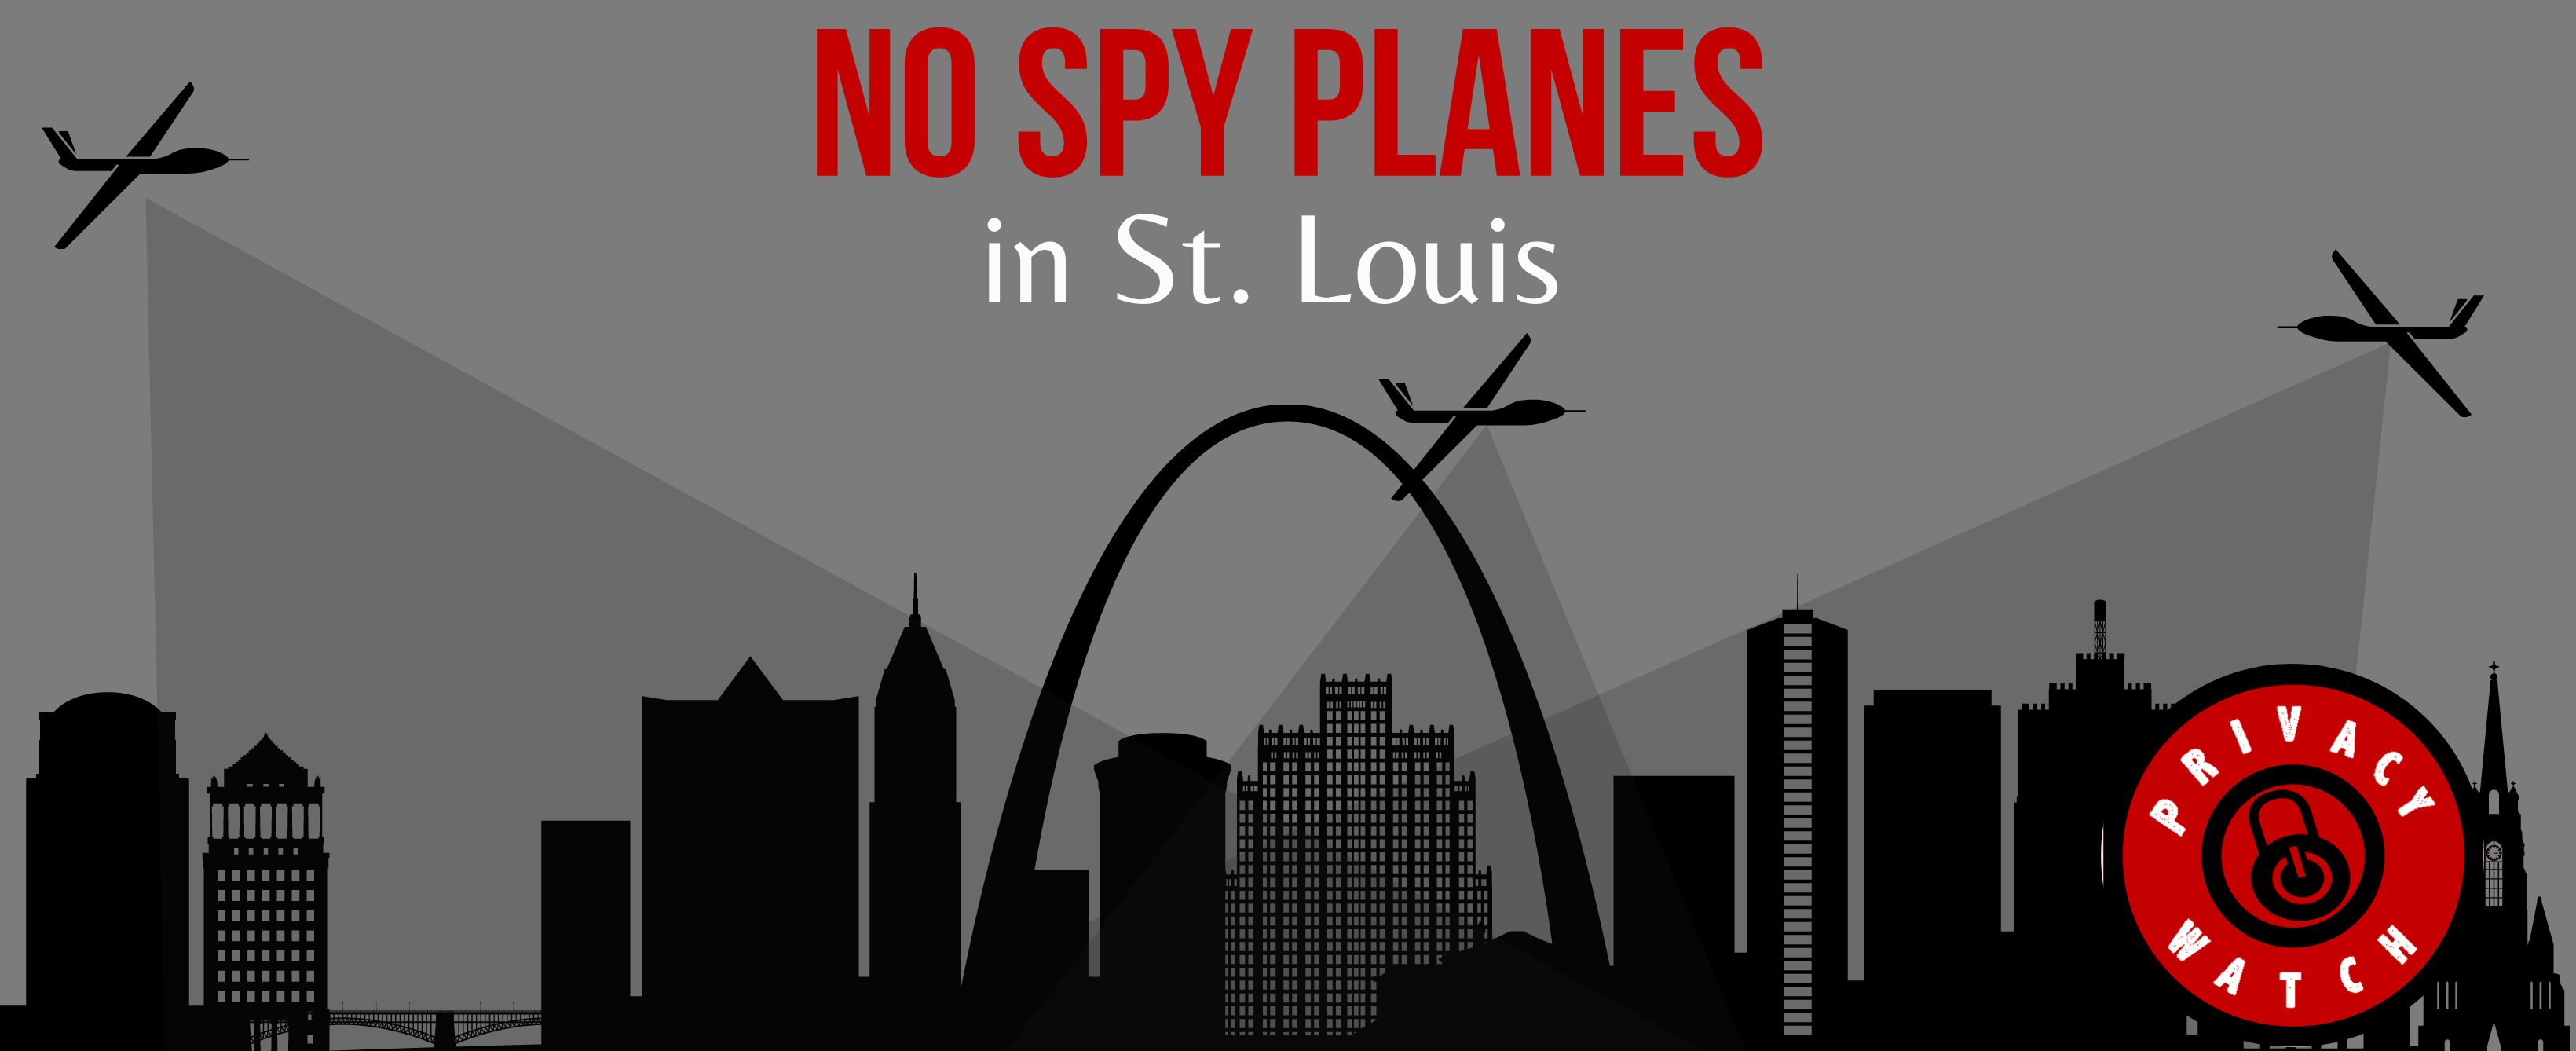 _nospyplanes_funders_petition